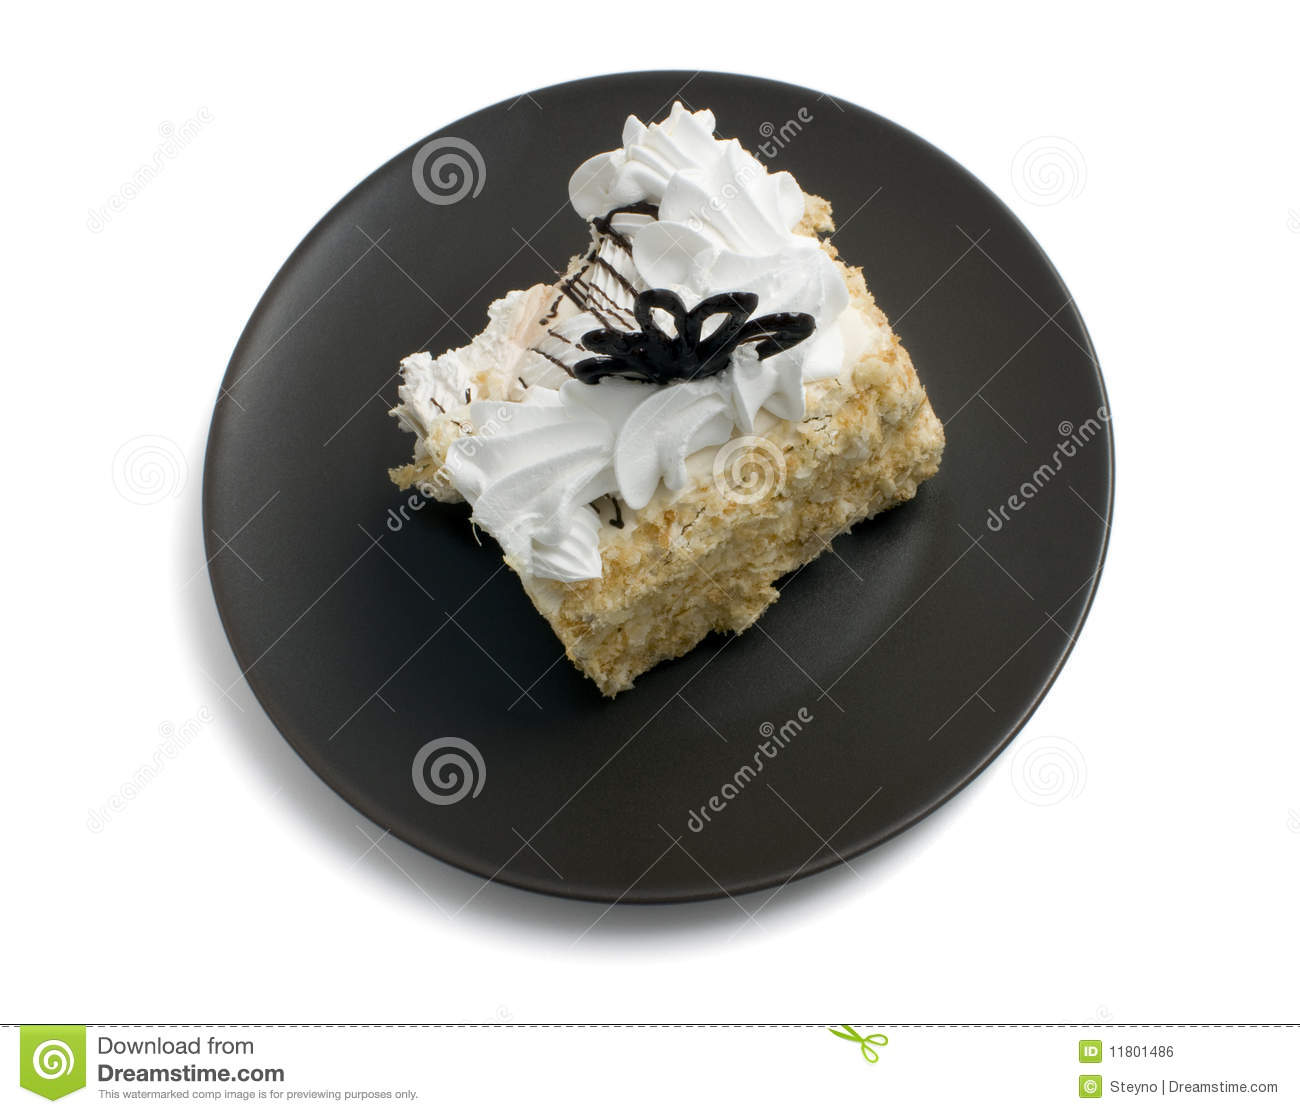 Clipart Slice Of Cake On A Plate : Piece Of Cake On A Plate Royalty Free Stock Image - Image ...